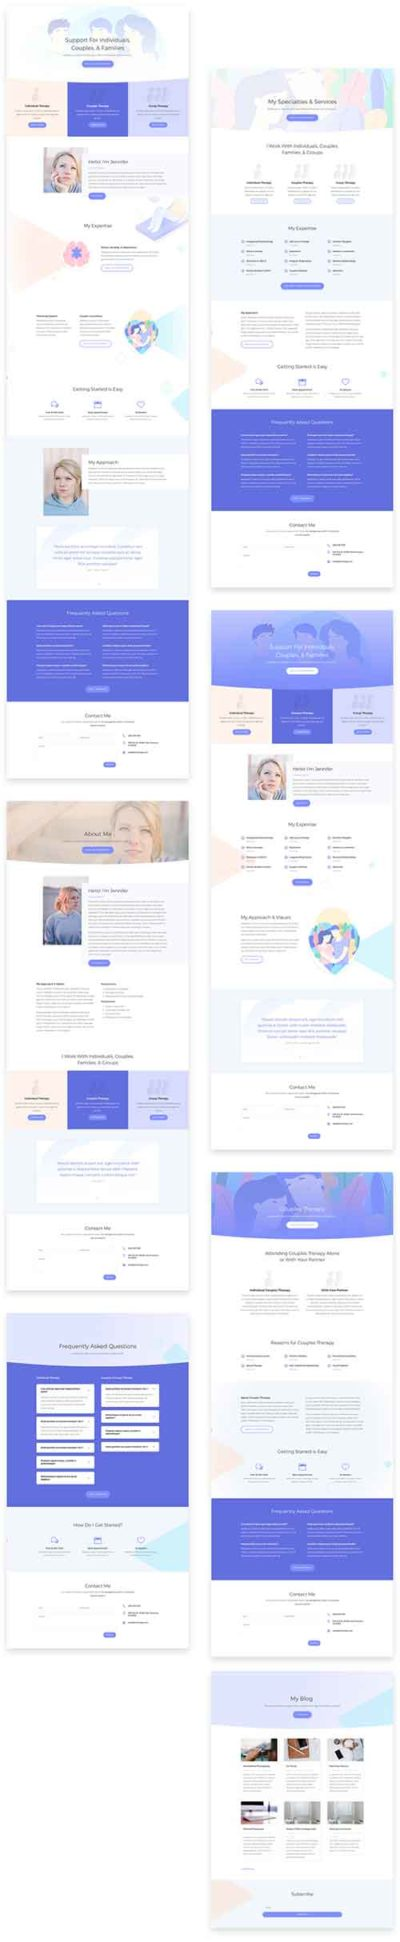 divi layout pack for therapist